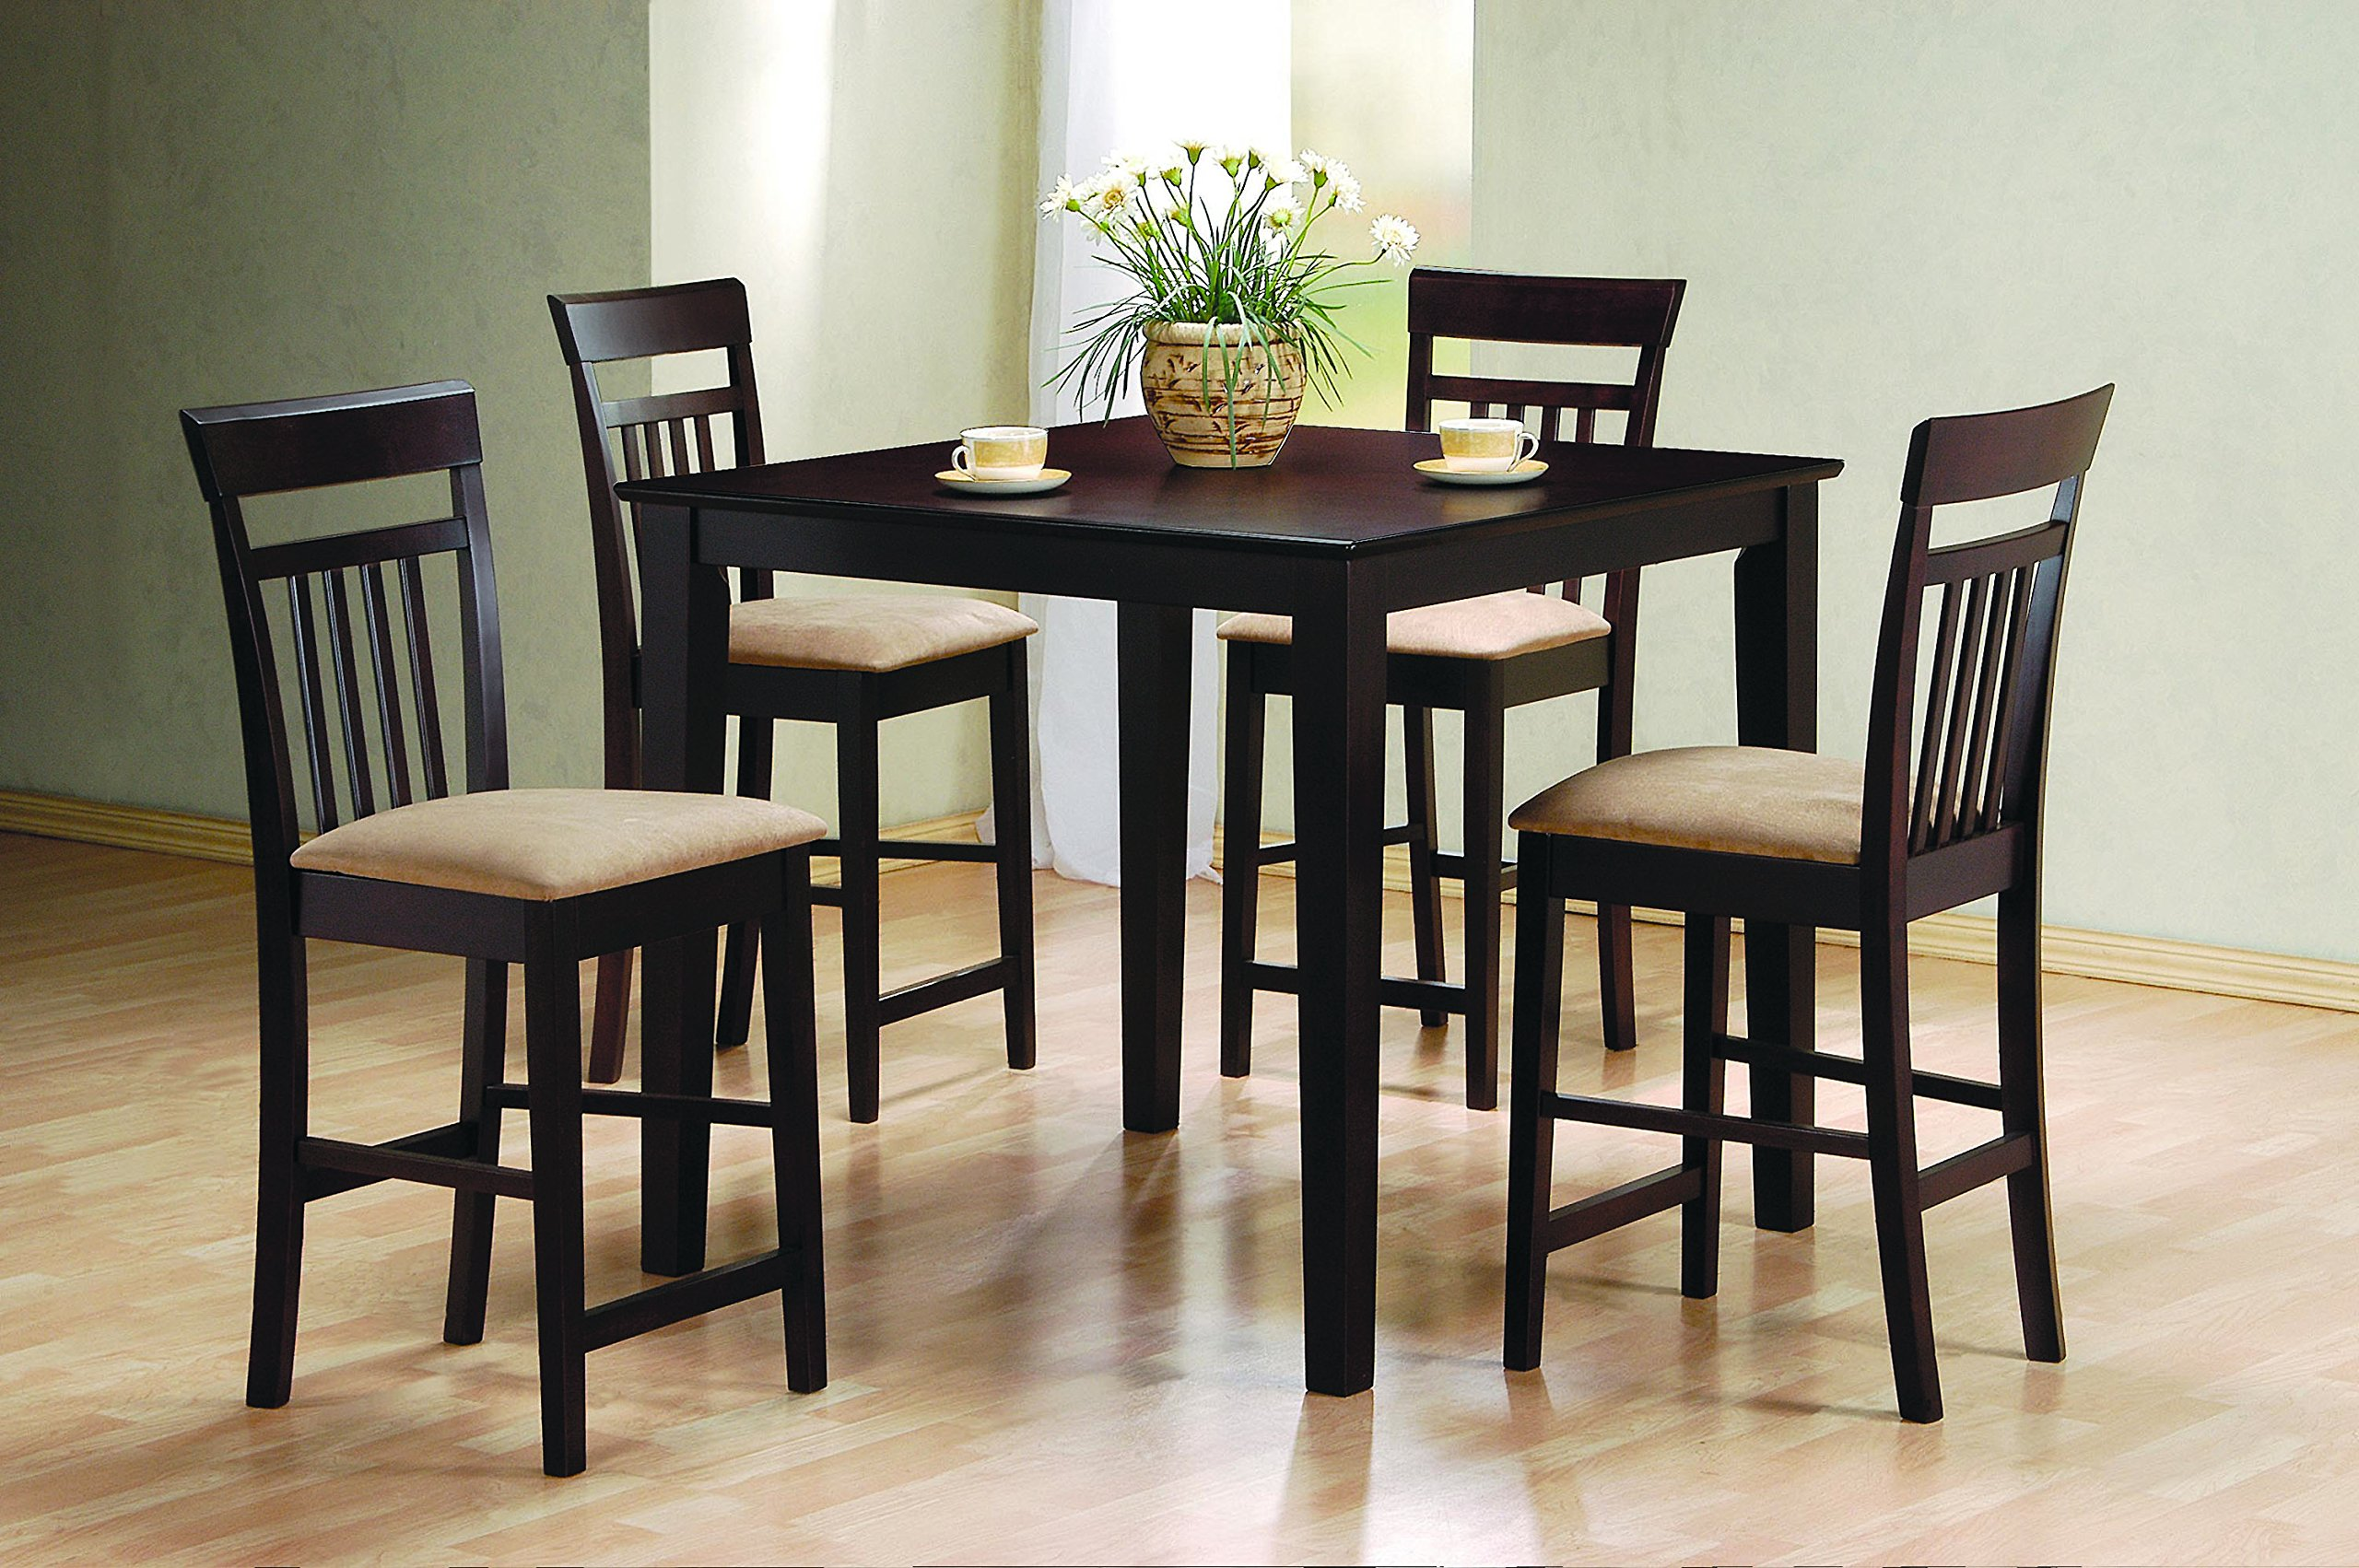 Coaster Home Furnishings  5 Piece Modern Transitional Square Counter Height Dining Set - Cappuccino